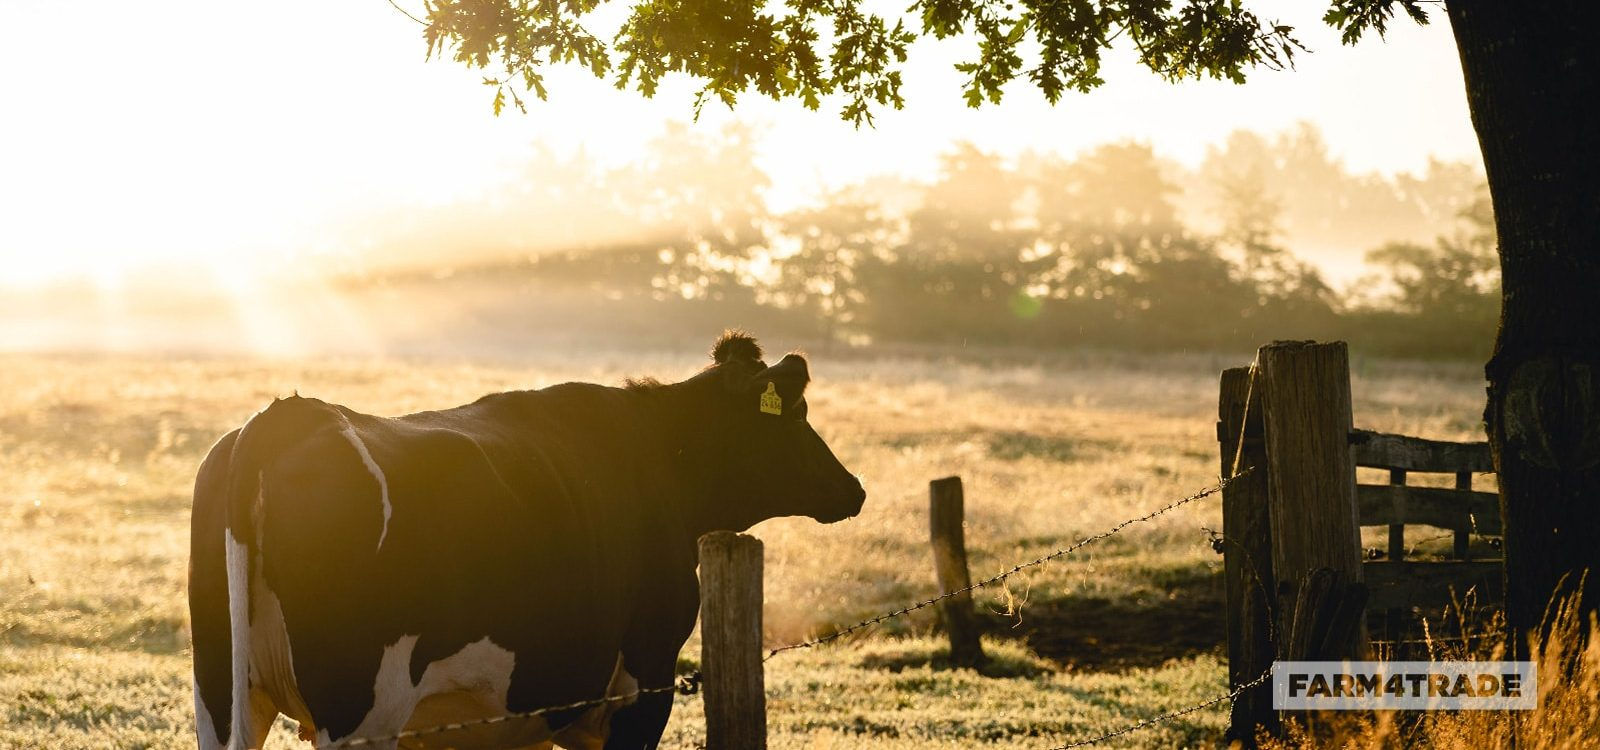 Farm4Trade-management techniques to reduce heat stress in livestock